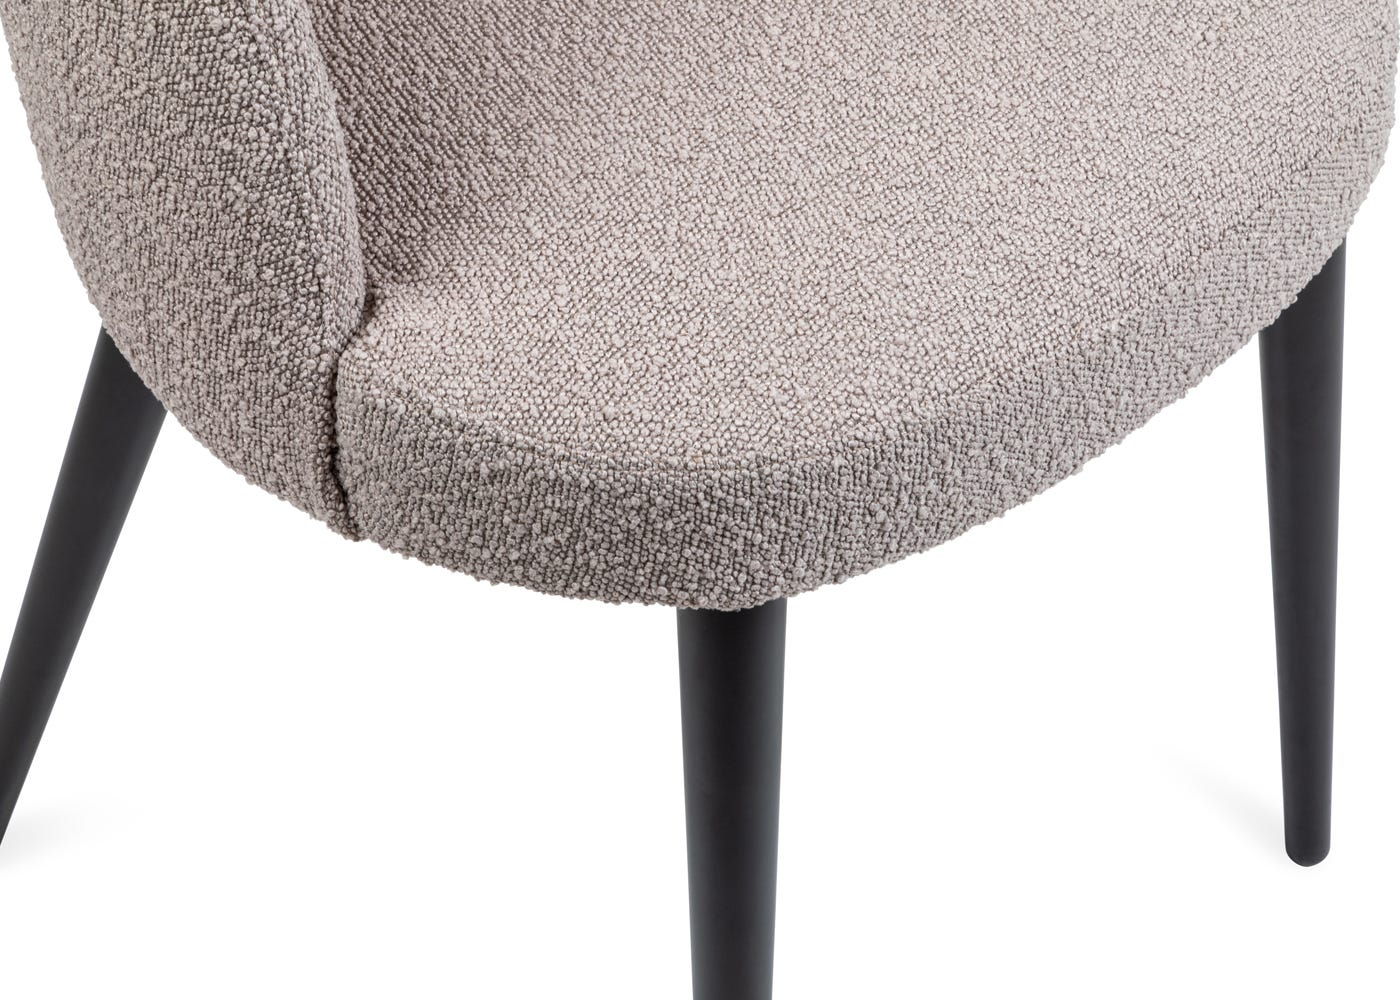 As shown: Grey boucle upholstery.